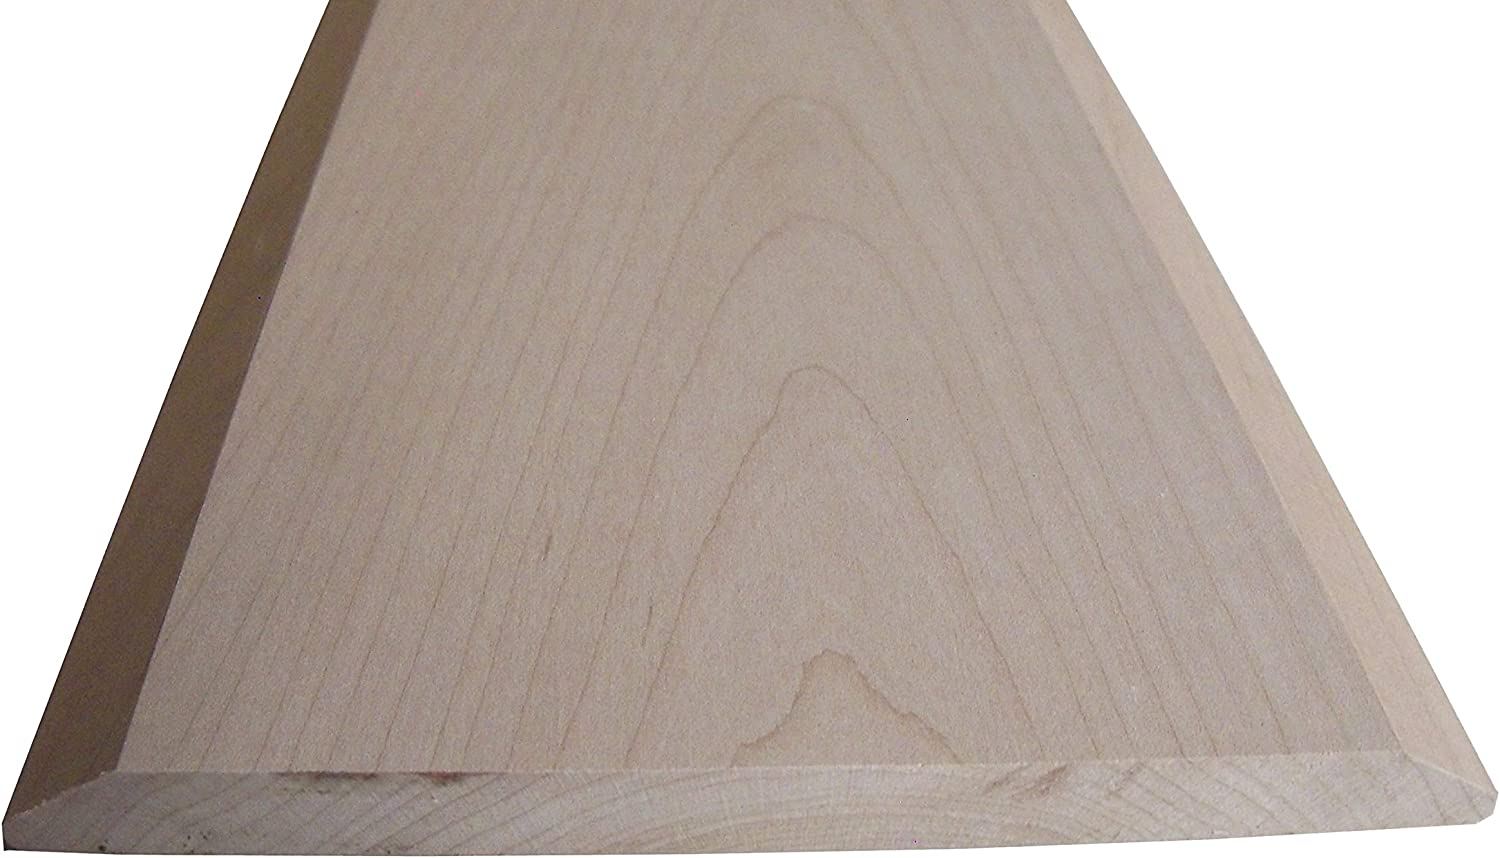 ADA Compliant Maple 1//2 inch Height Interior Solid Wood Threshold 4 1//2 x 36 HBP